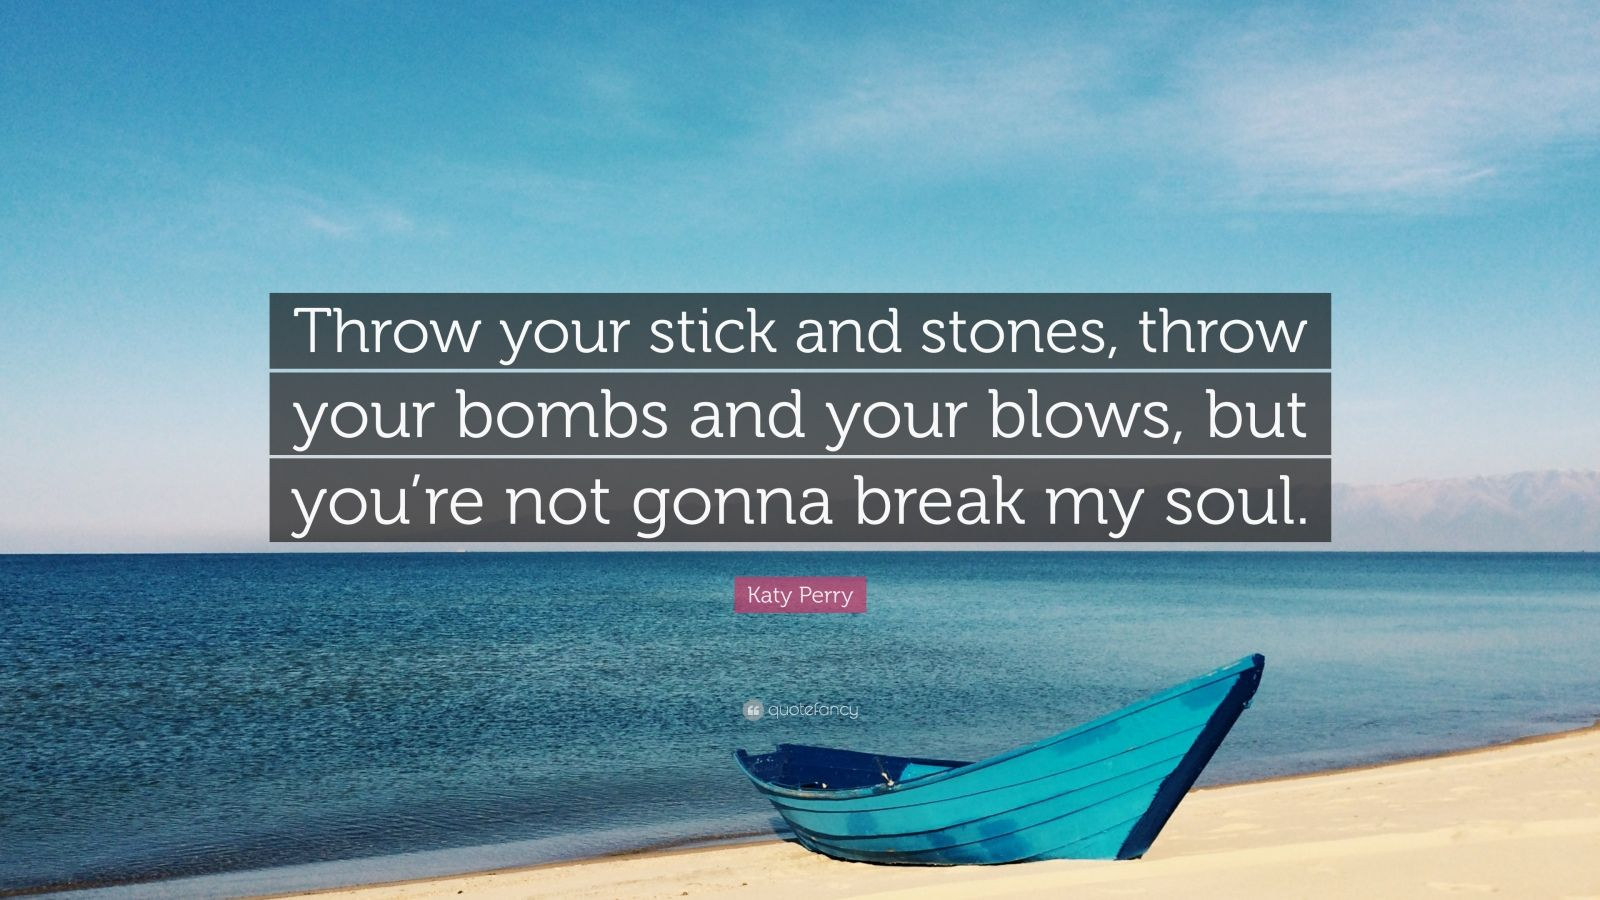 """Katy Perry Quote: """"Throw your stick and stones, throw your bombs and your blows, but you're not gonna break my soul."""""""